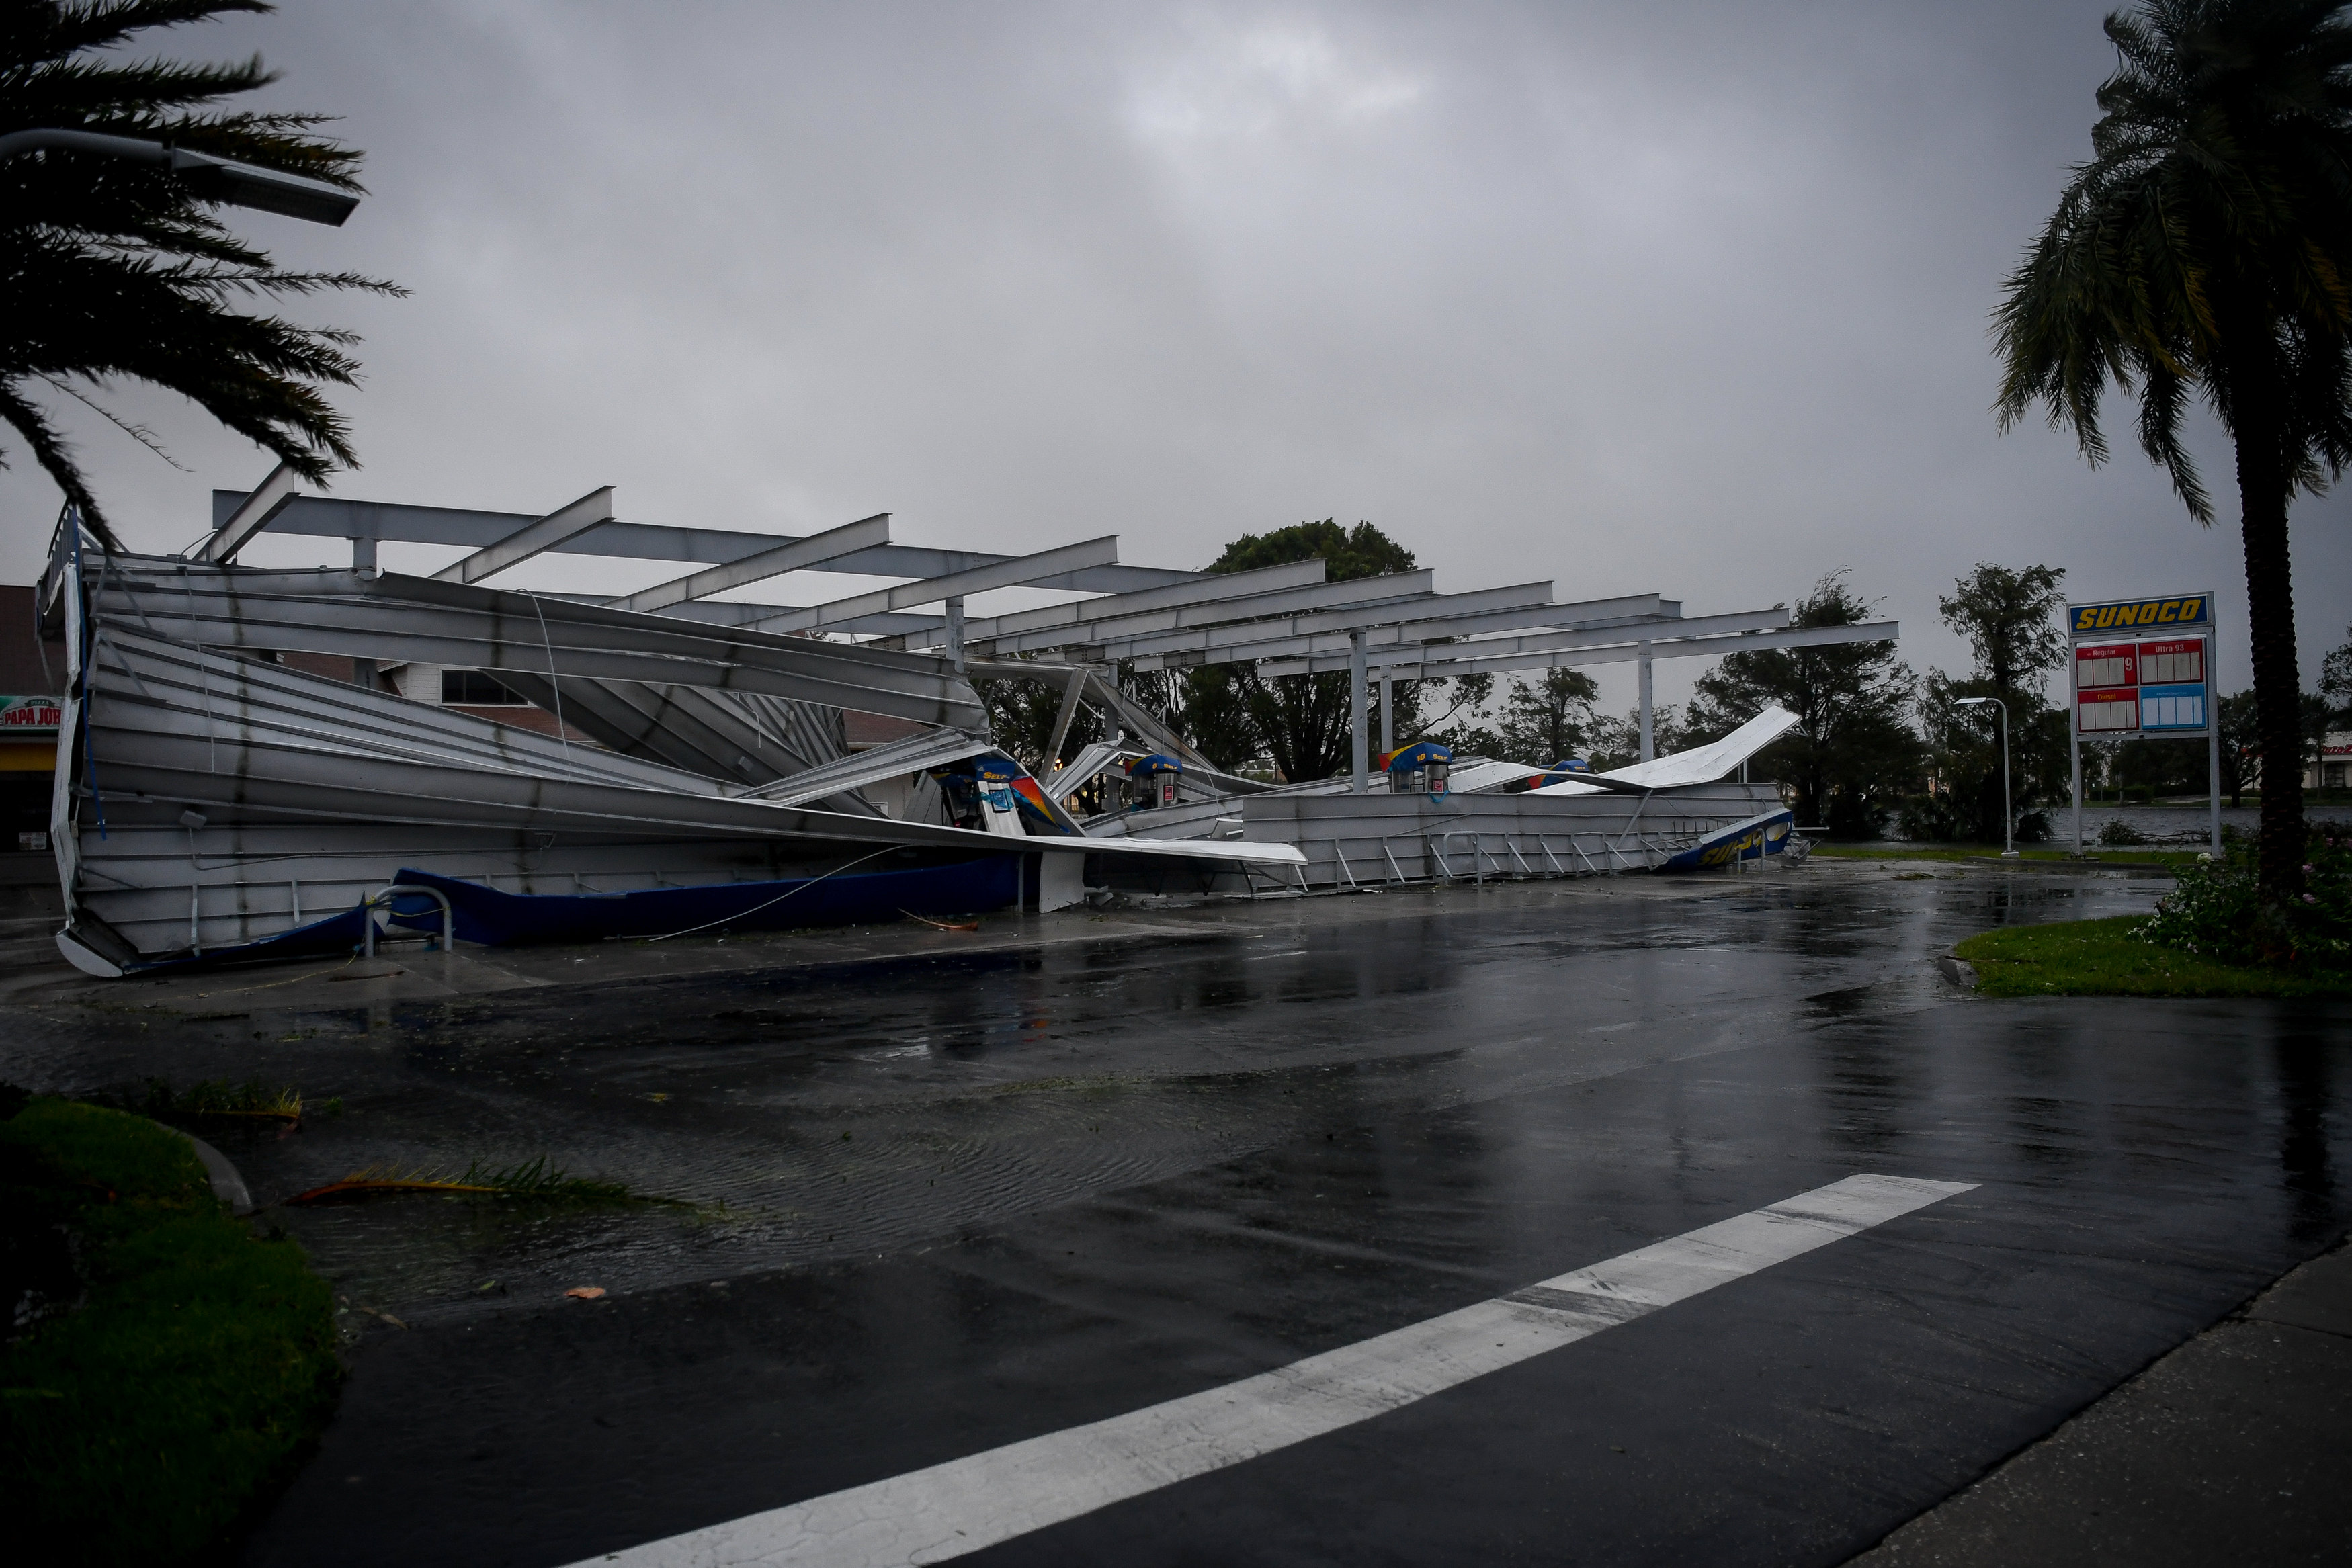 The crumbled canopy of a gas station damaged by Hurricane Irma is seen in Bonita Springs, Florida on Sept. 10, 2017. (REUTERS/Bryan Woolston)